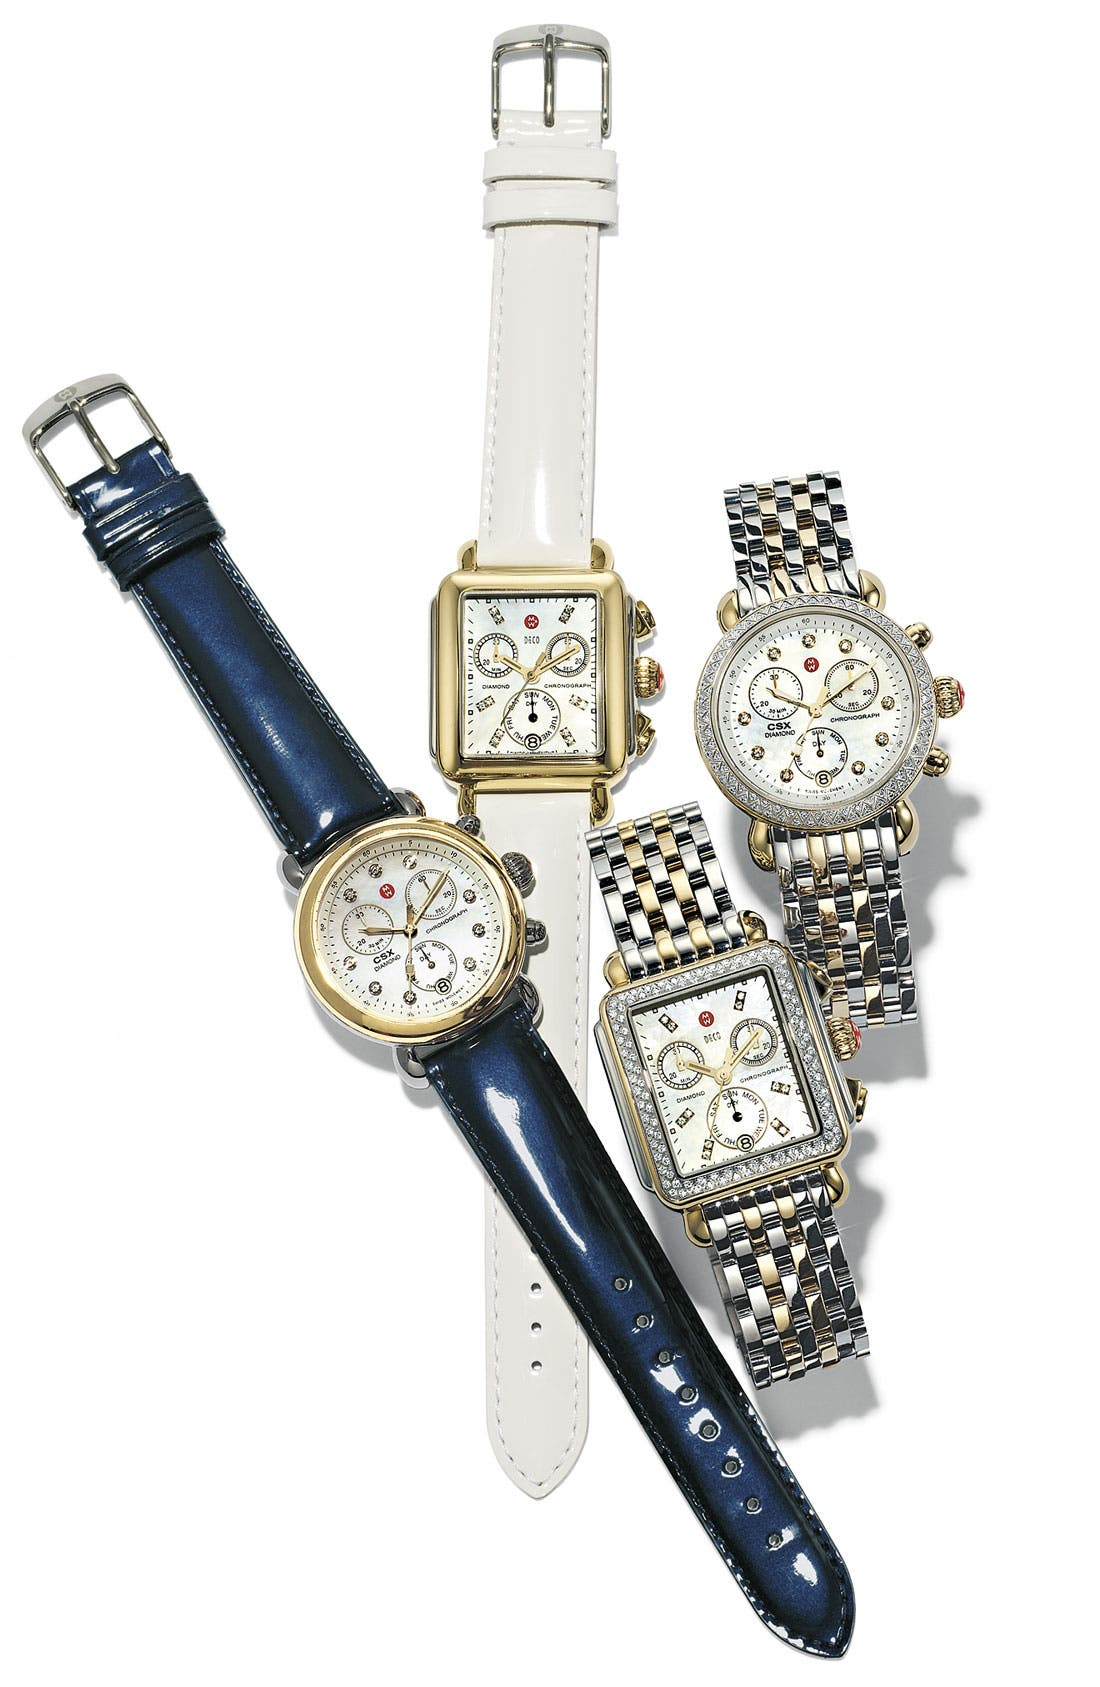 Alternate Image 1 Selected - MICHELE 'CSX-36' Diamond Dial Two-Tone Watch Case & 18mm Navy Patent Leather Strap